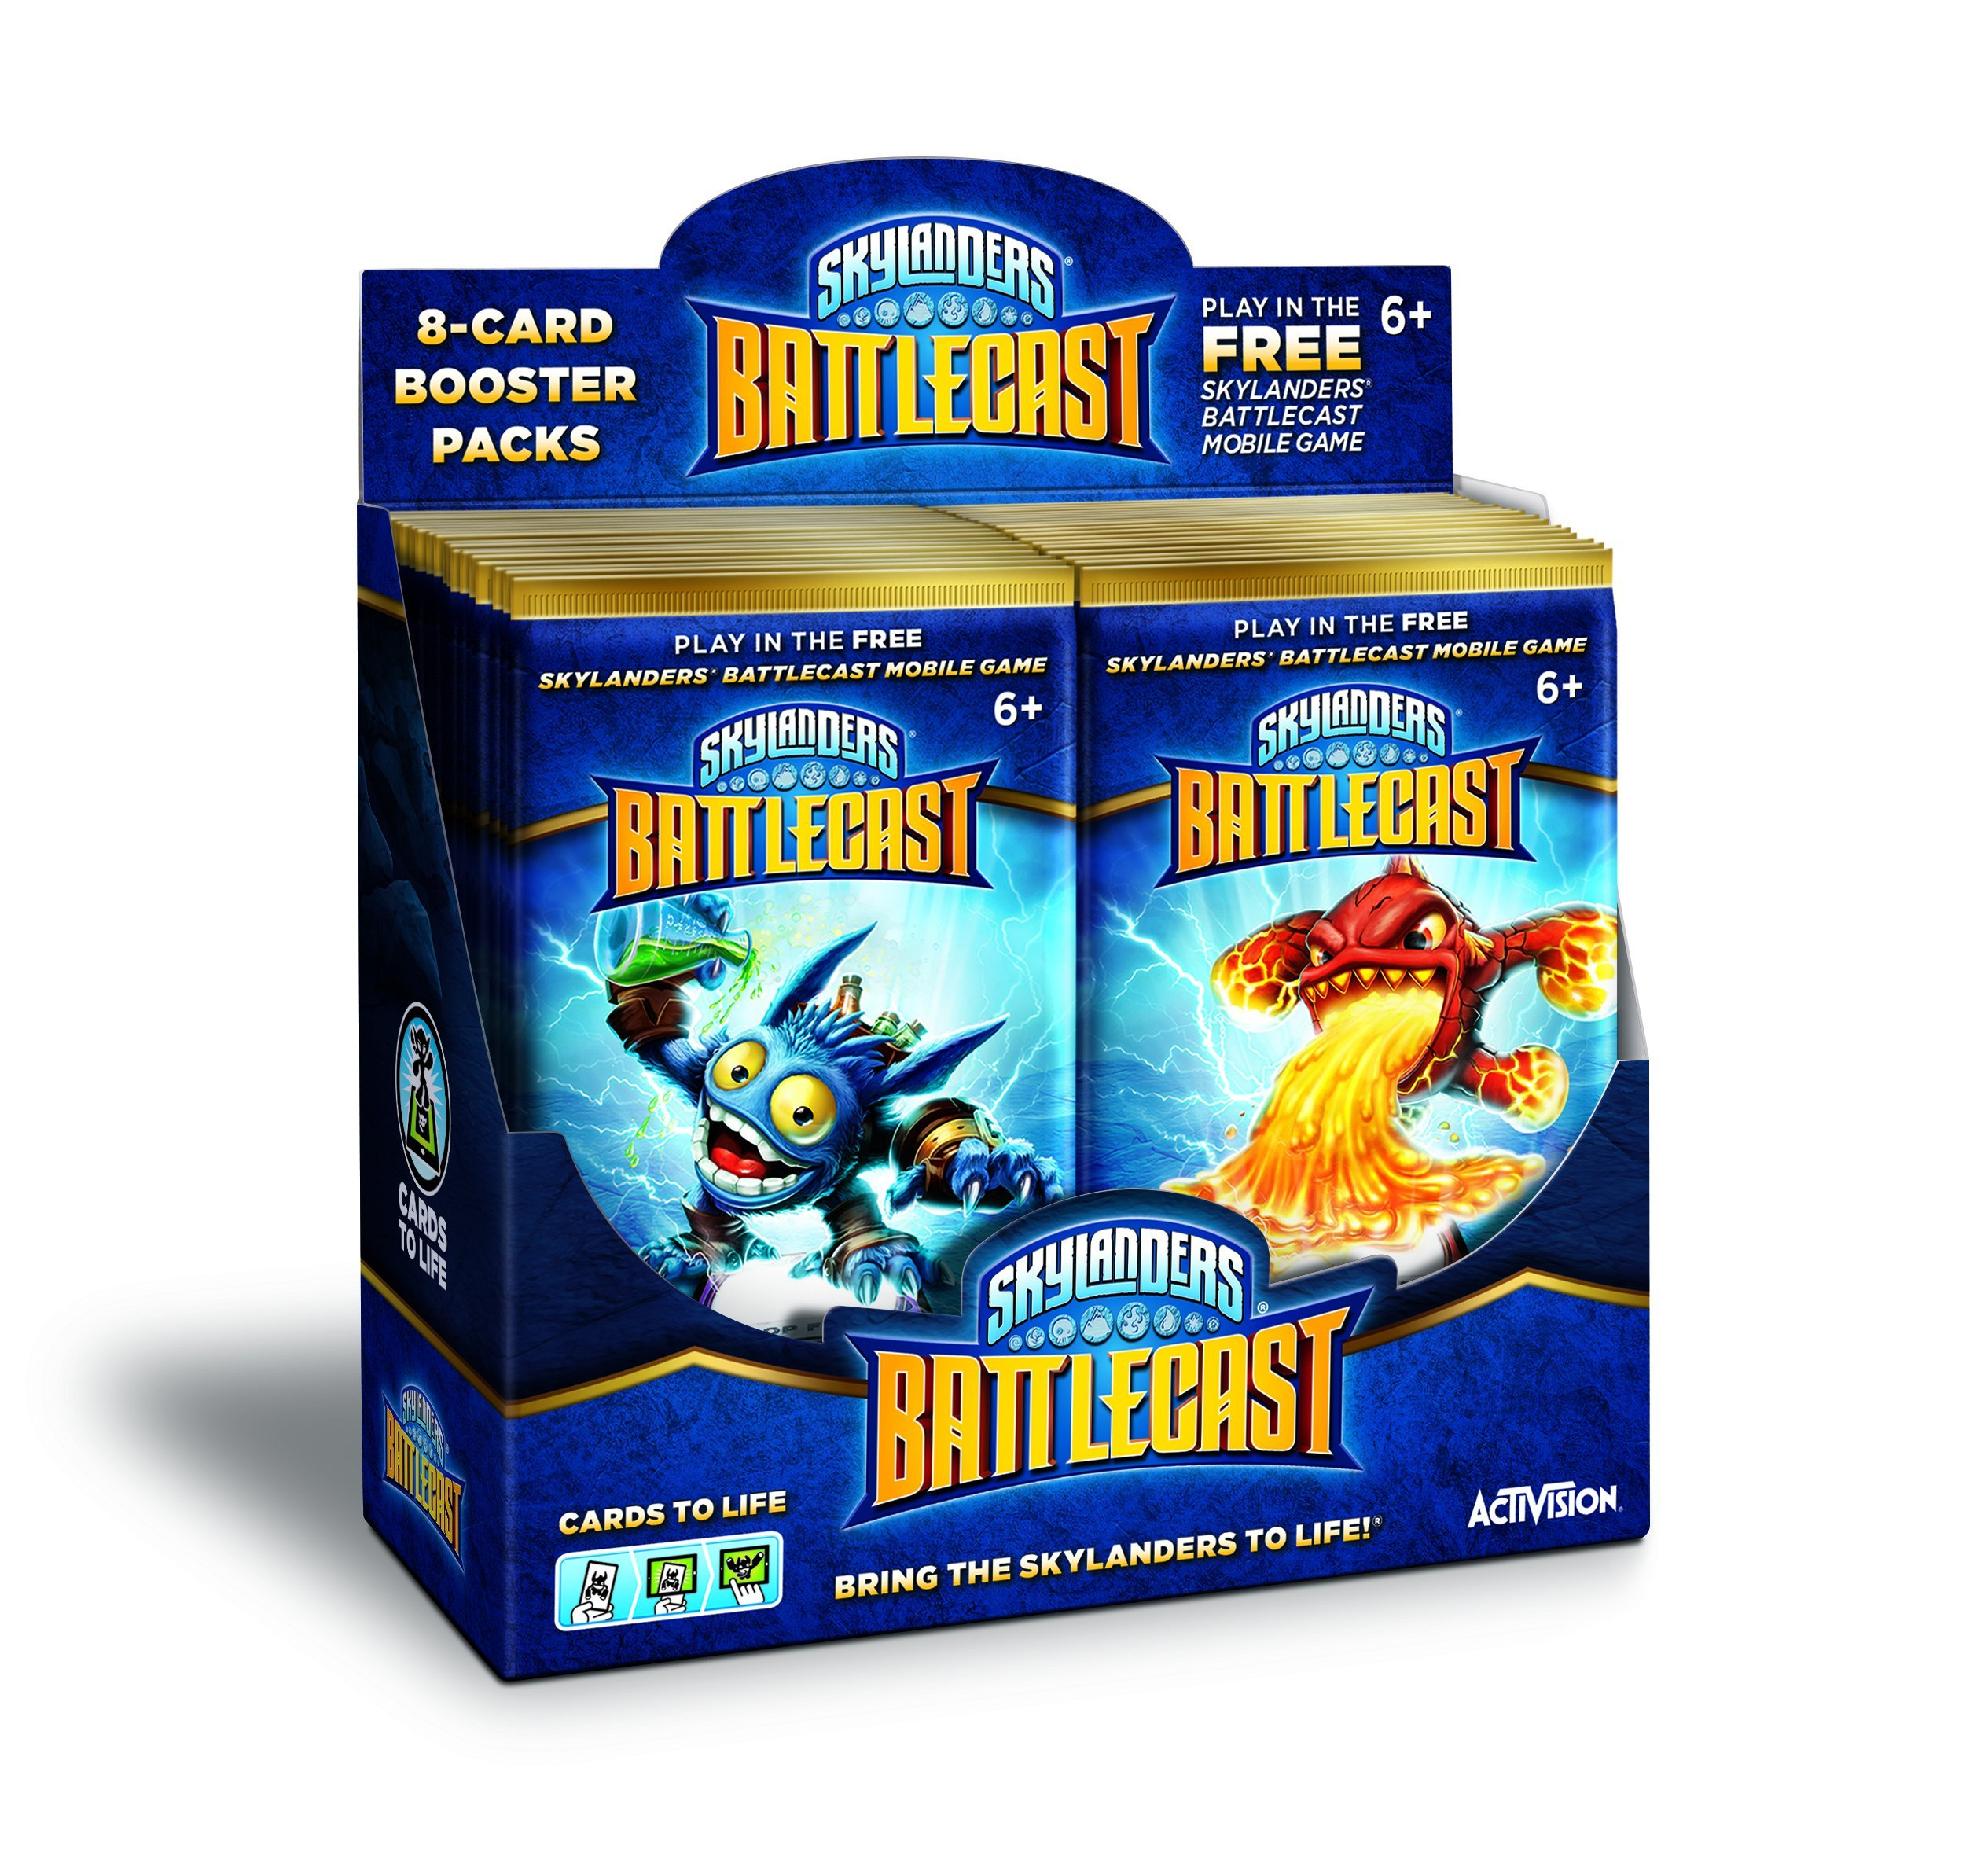 Skylanders Battlecast Booster Master Box (36 Booster Packs) - Android and iOS by Activision (Image #8)